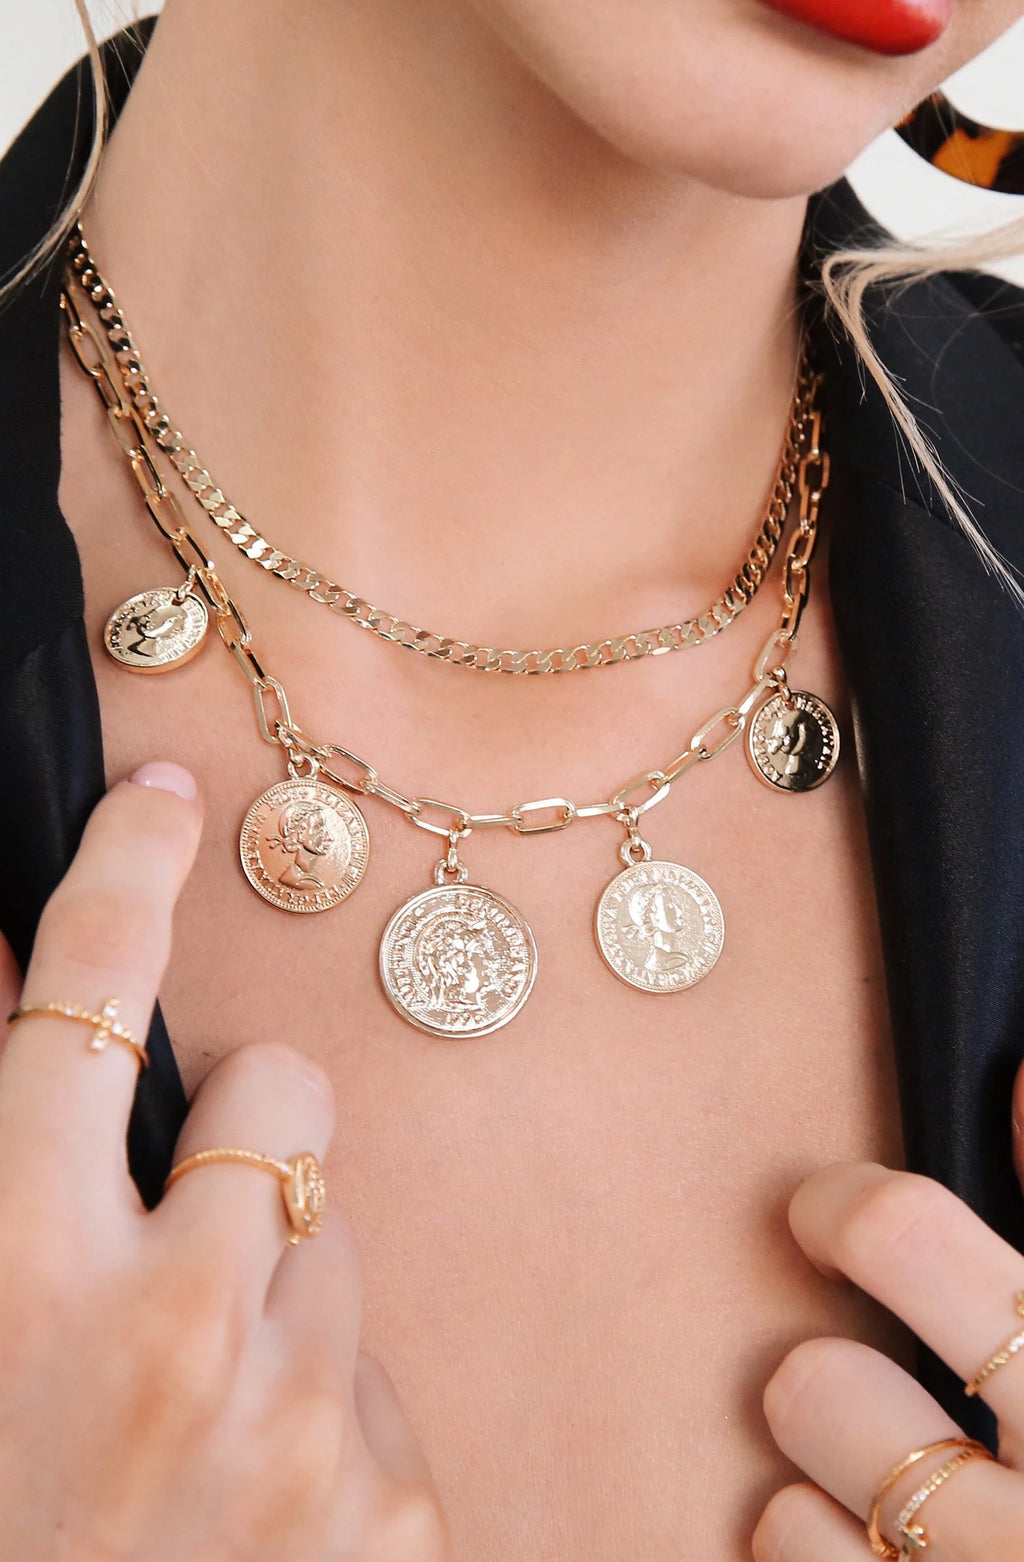 'All About the Coin' 18kt Gold Layered Necklace